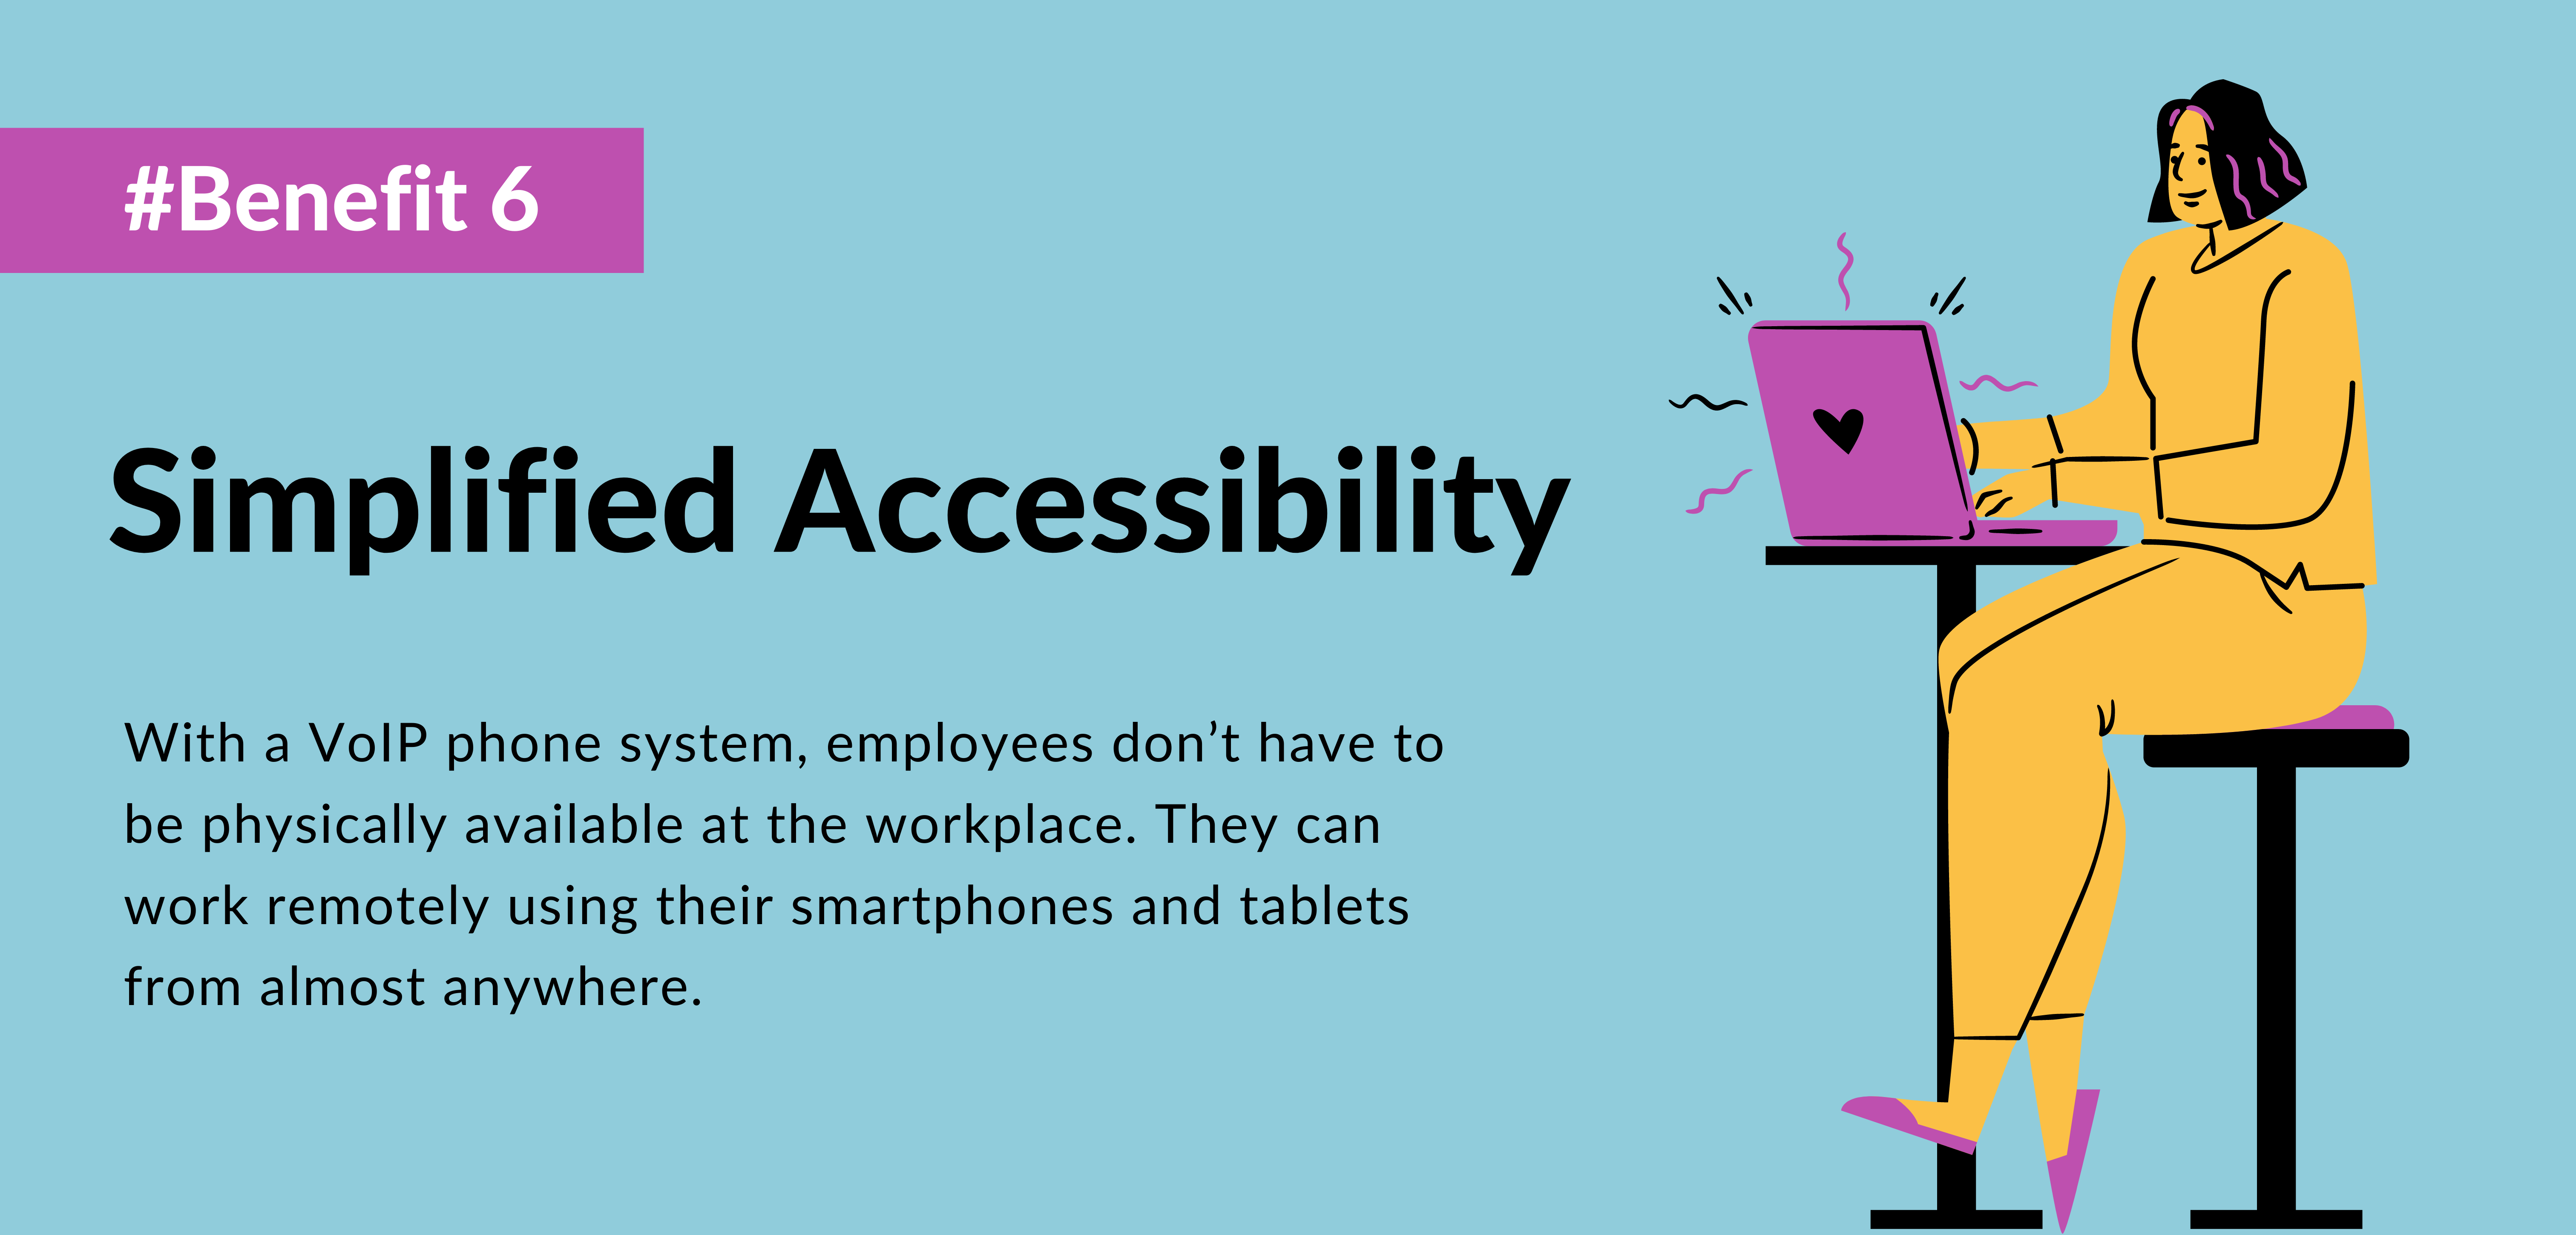 sixth benefit of using voip is Simplified Accessibility- telecloud